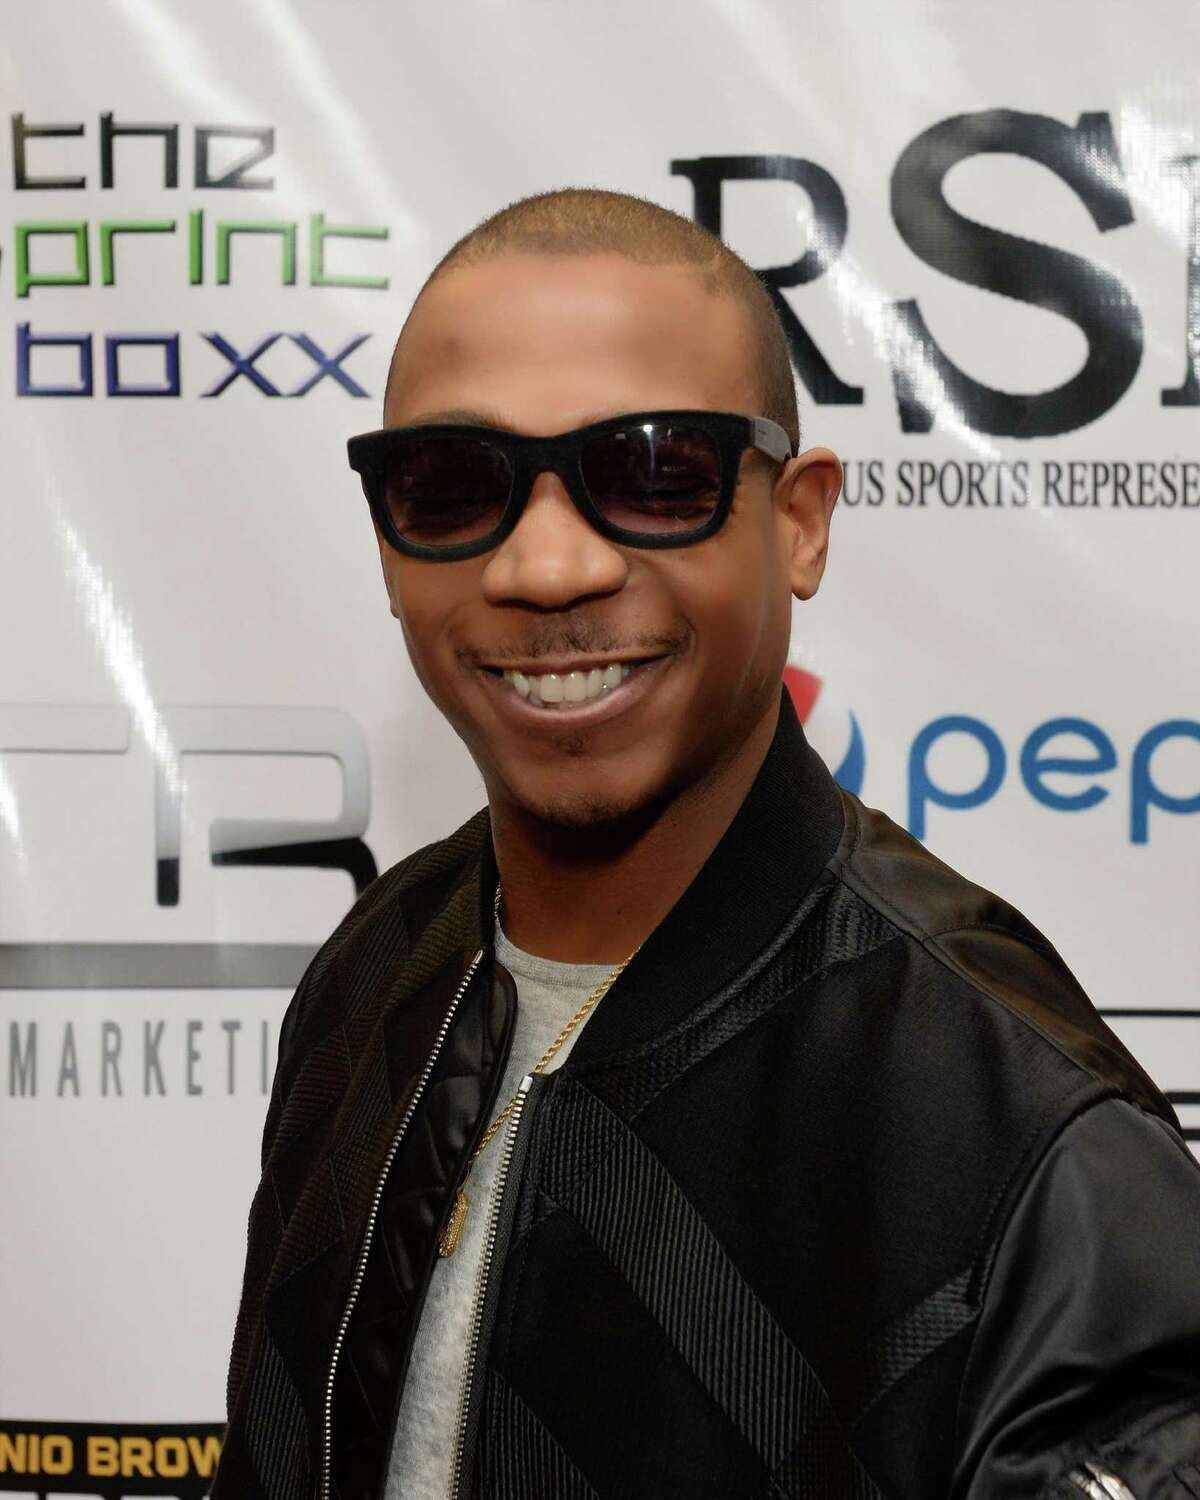 Grammy nominated Rapper Ja Rule arrives for the DraftKings Antonio Brown Celebrity Charity Basketball Game on February 3, 2017 at Joe K. Butler Sports Complex, Houston, TX.